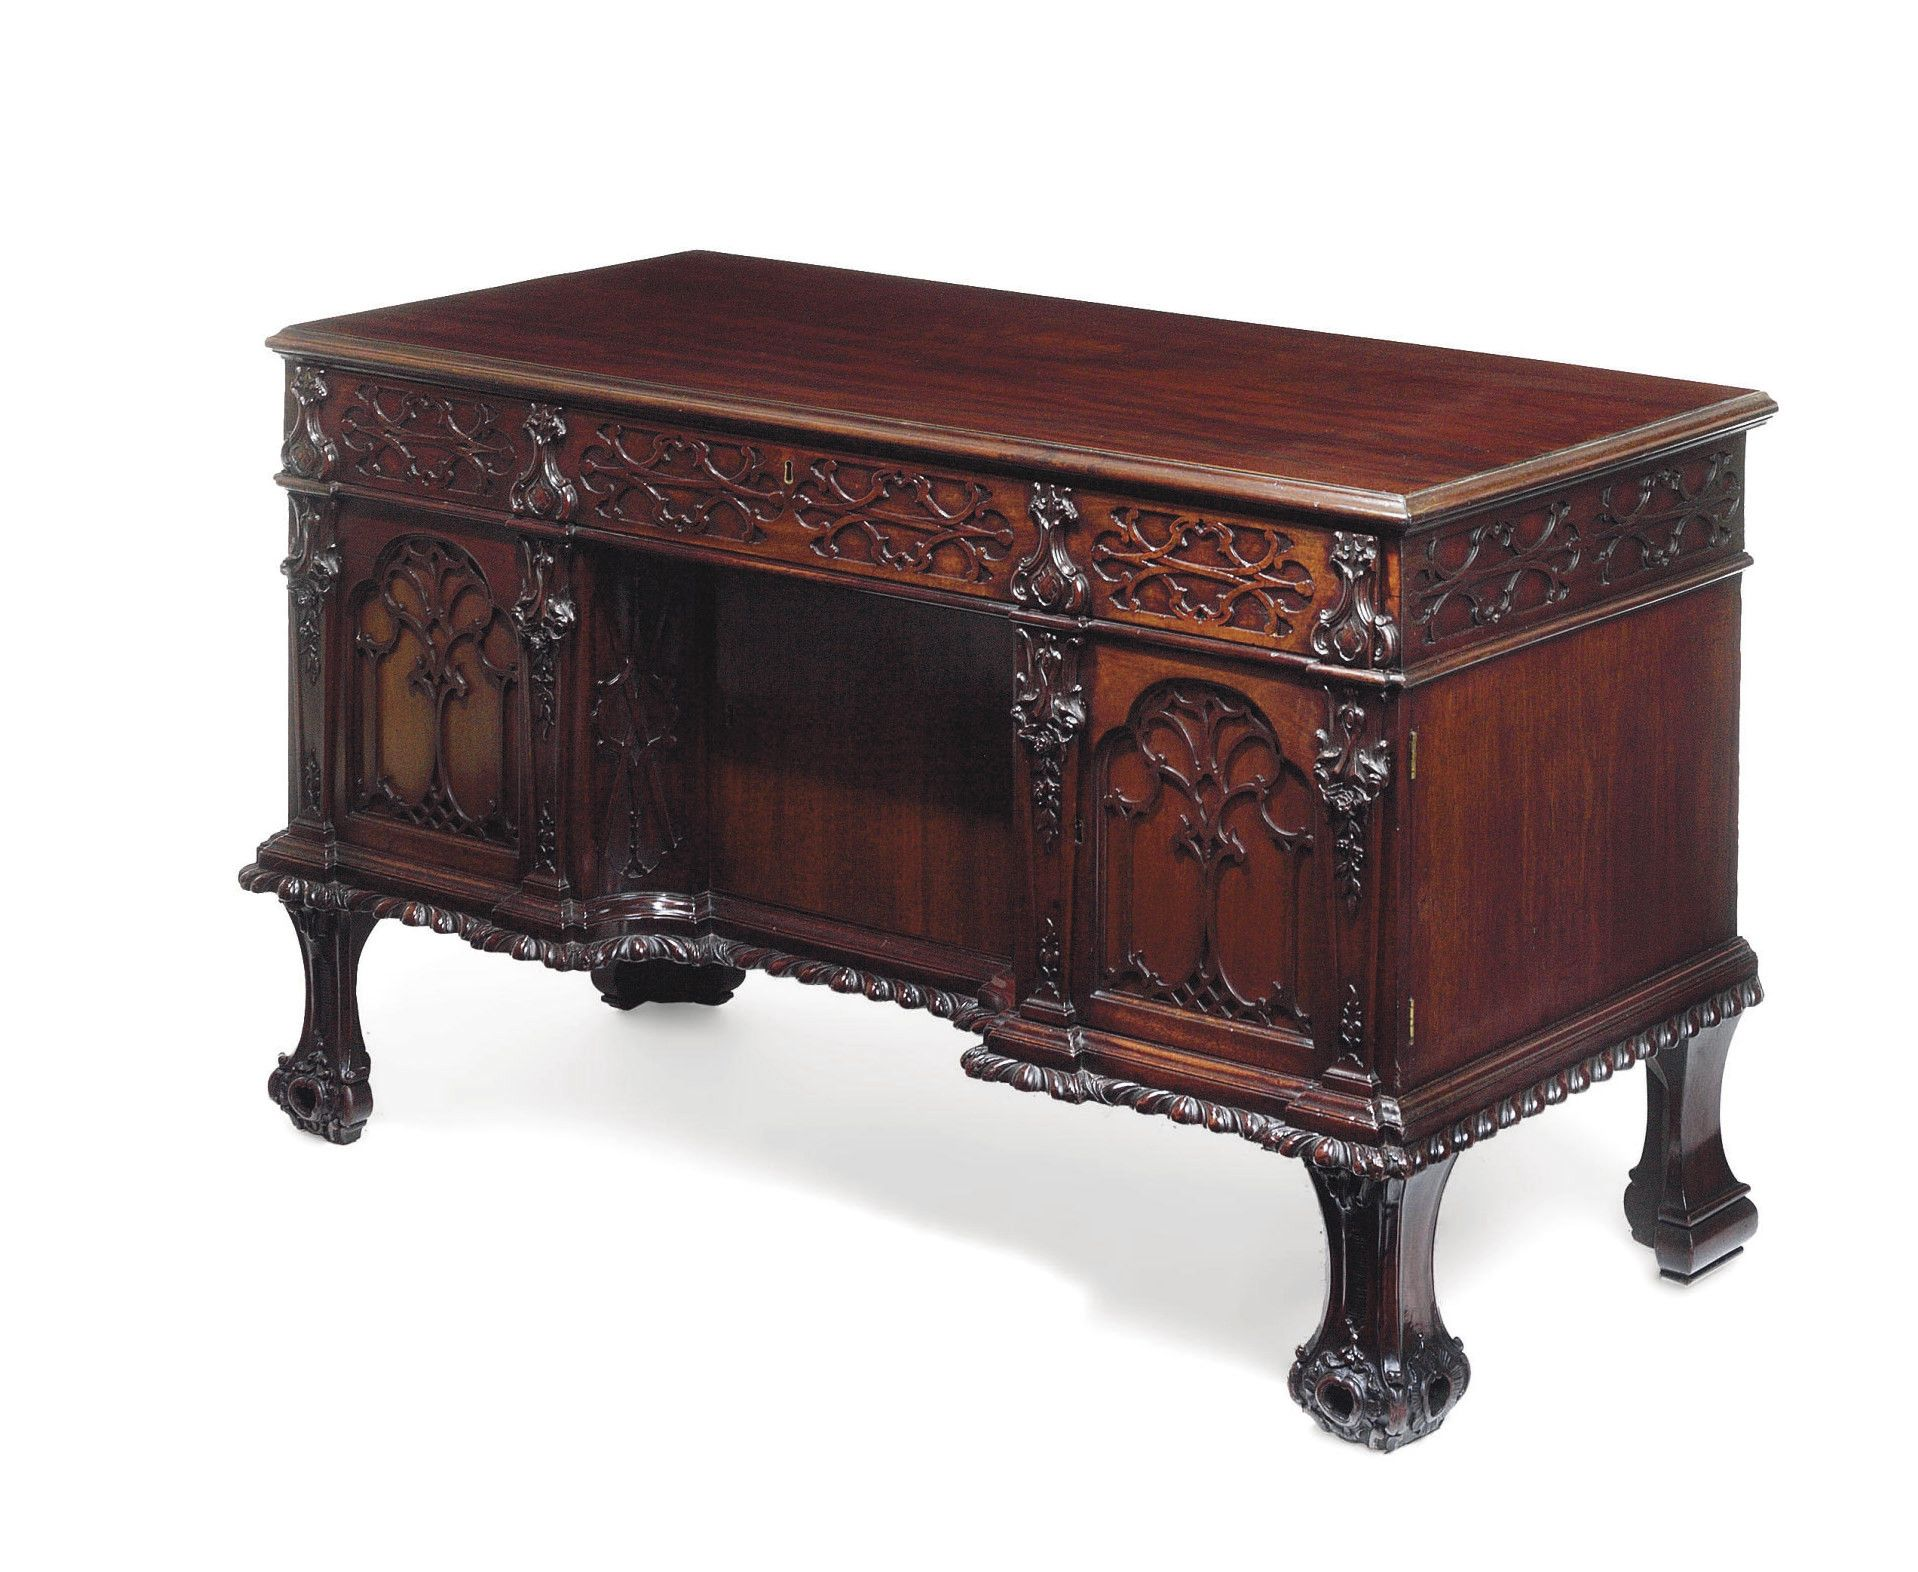 date unspecified A II MAHOGANY DESK ATTRIBUTED TO